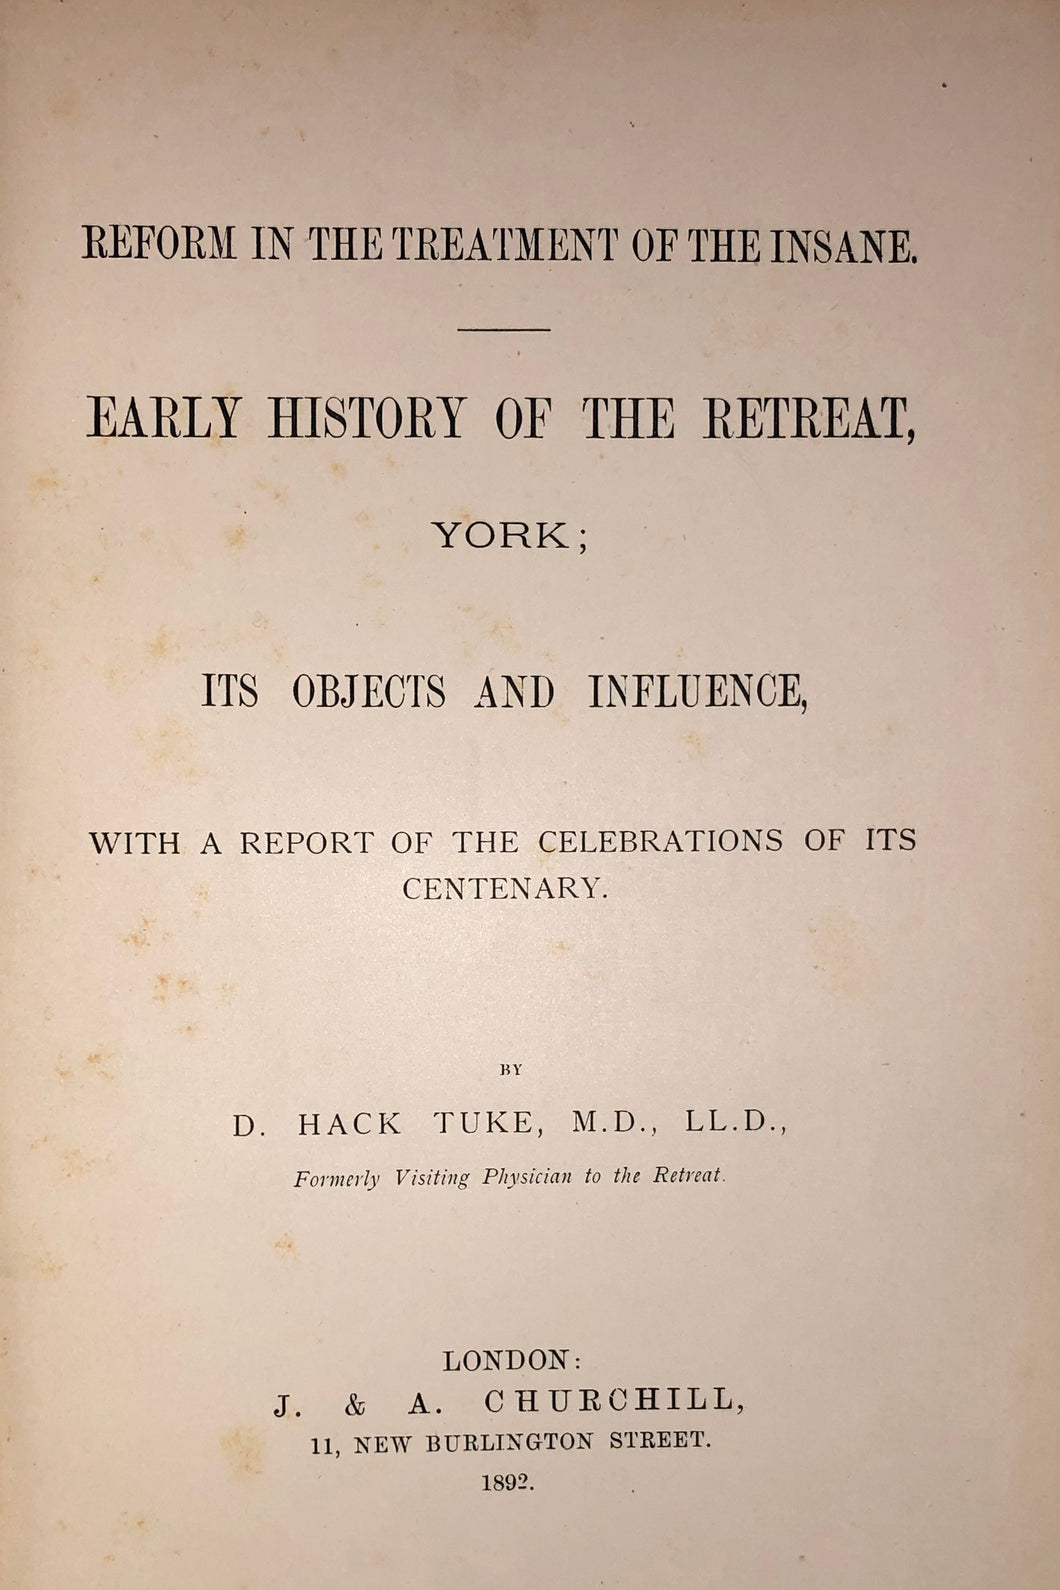 Reform in the treatment of the insane : early history of the retreat, York